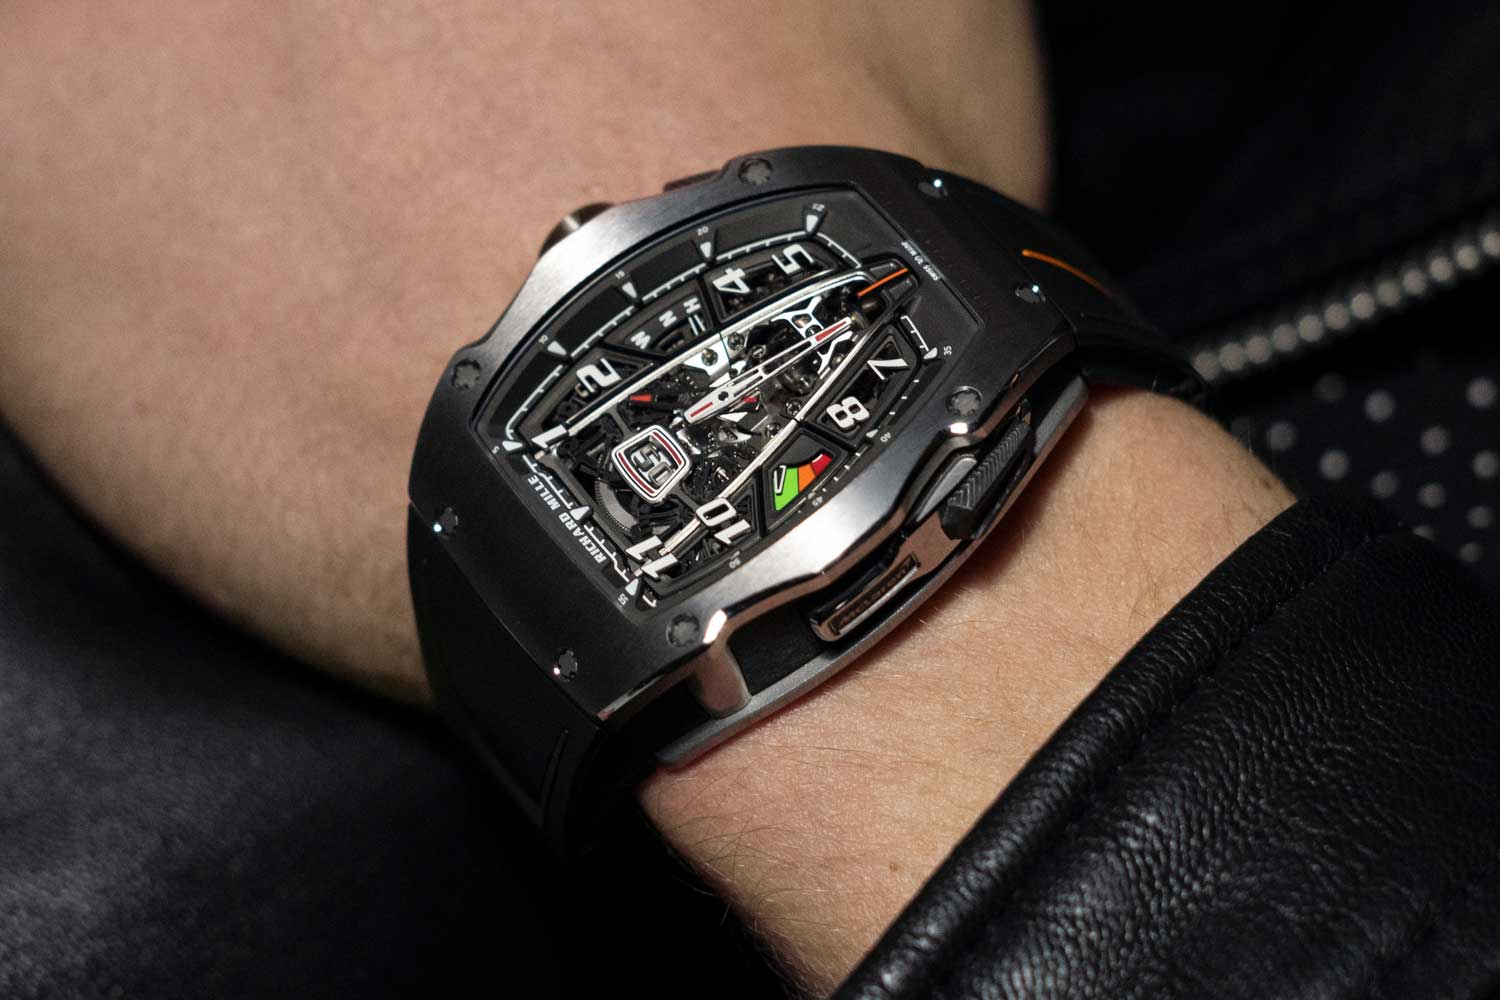 It took Richard Mille 2,800 hours spread over 18 months to develop the new case shape, for a watch that weighs 87.247 grams and is capable of withstanding shocks up to 5,000G.